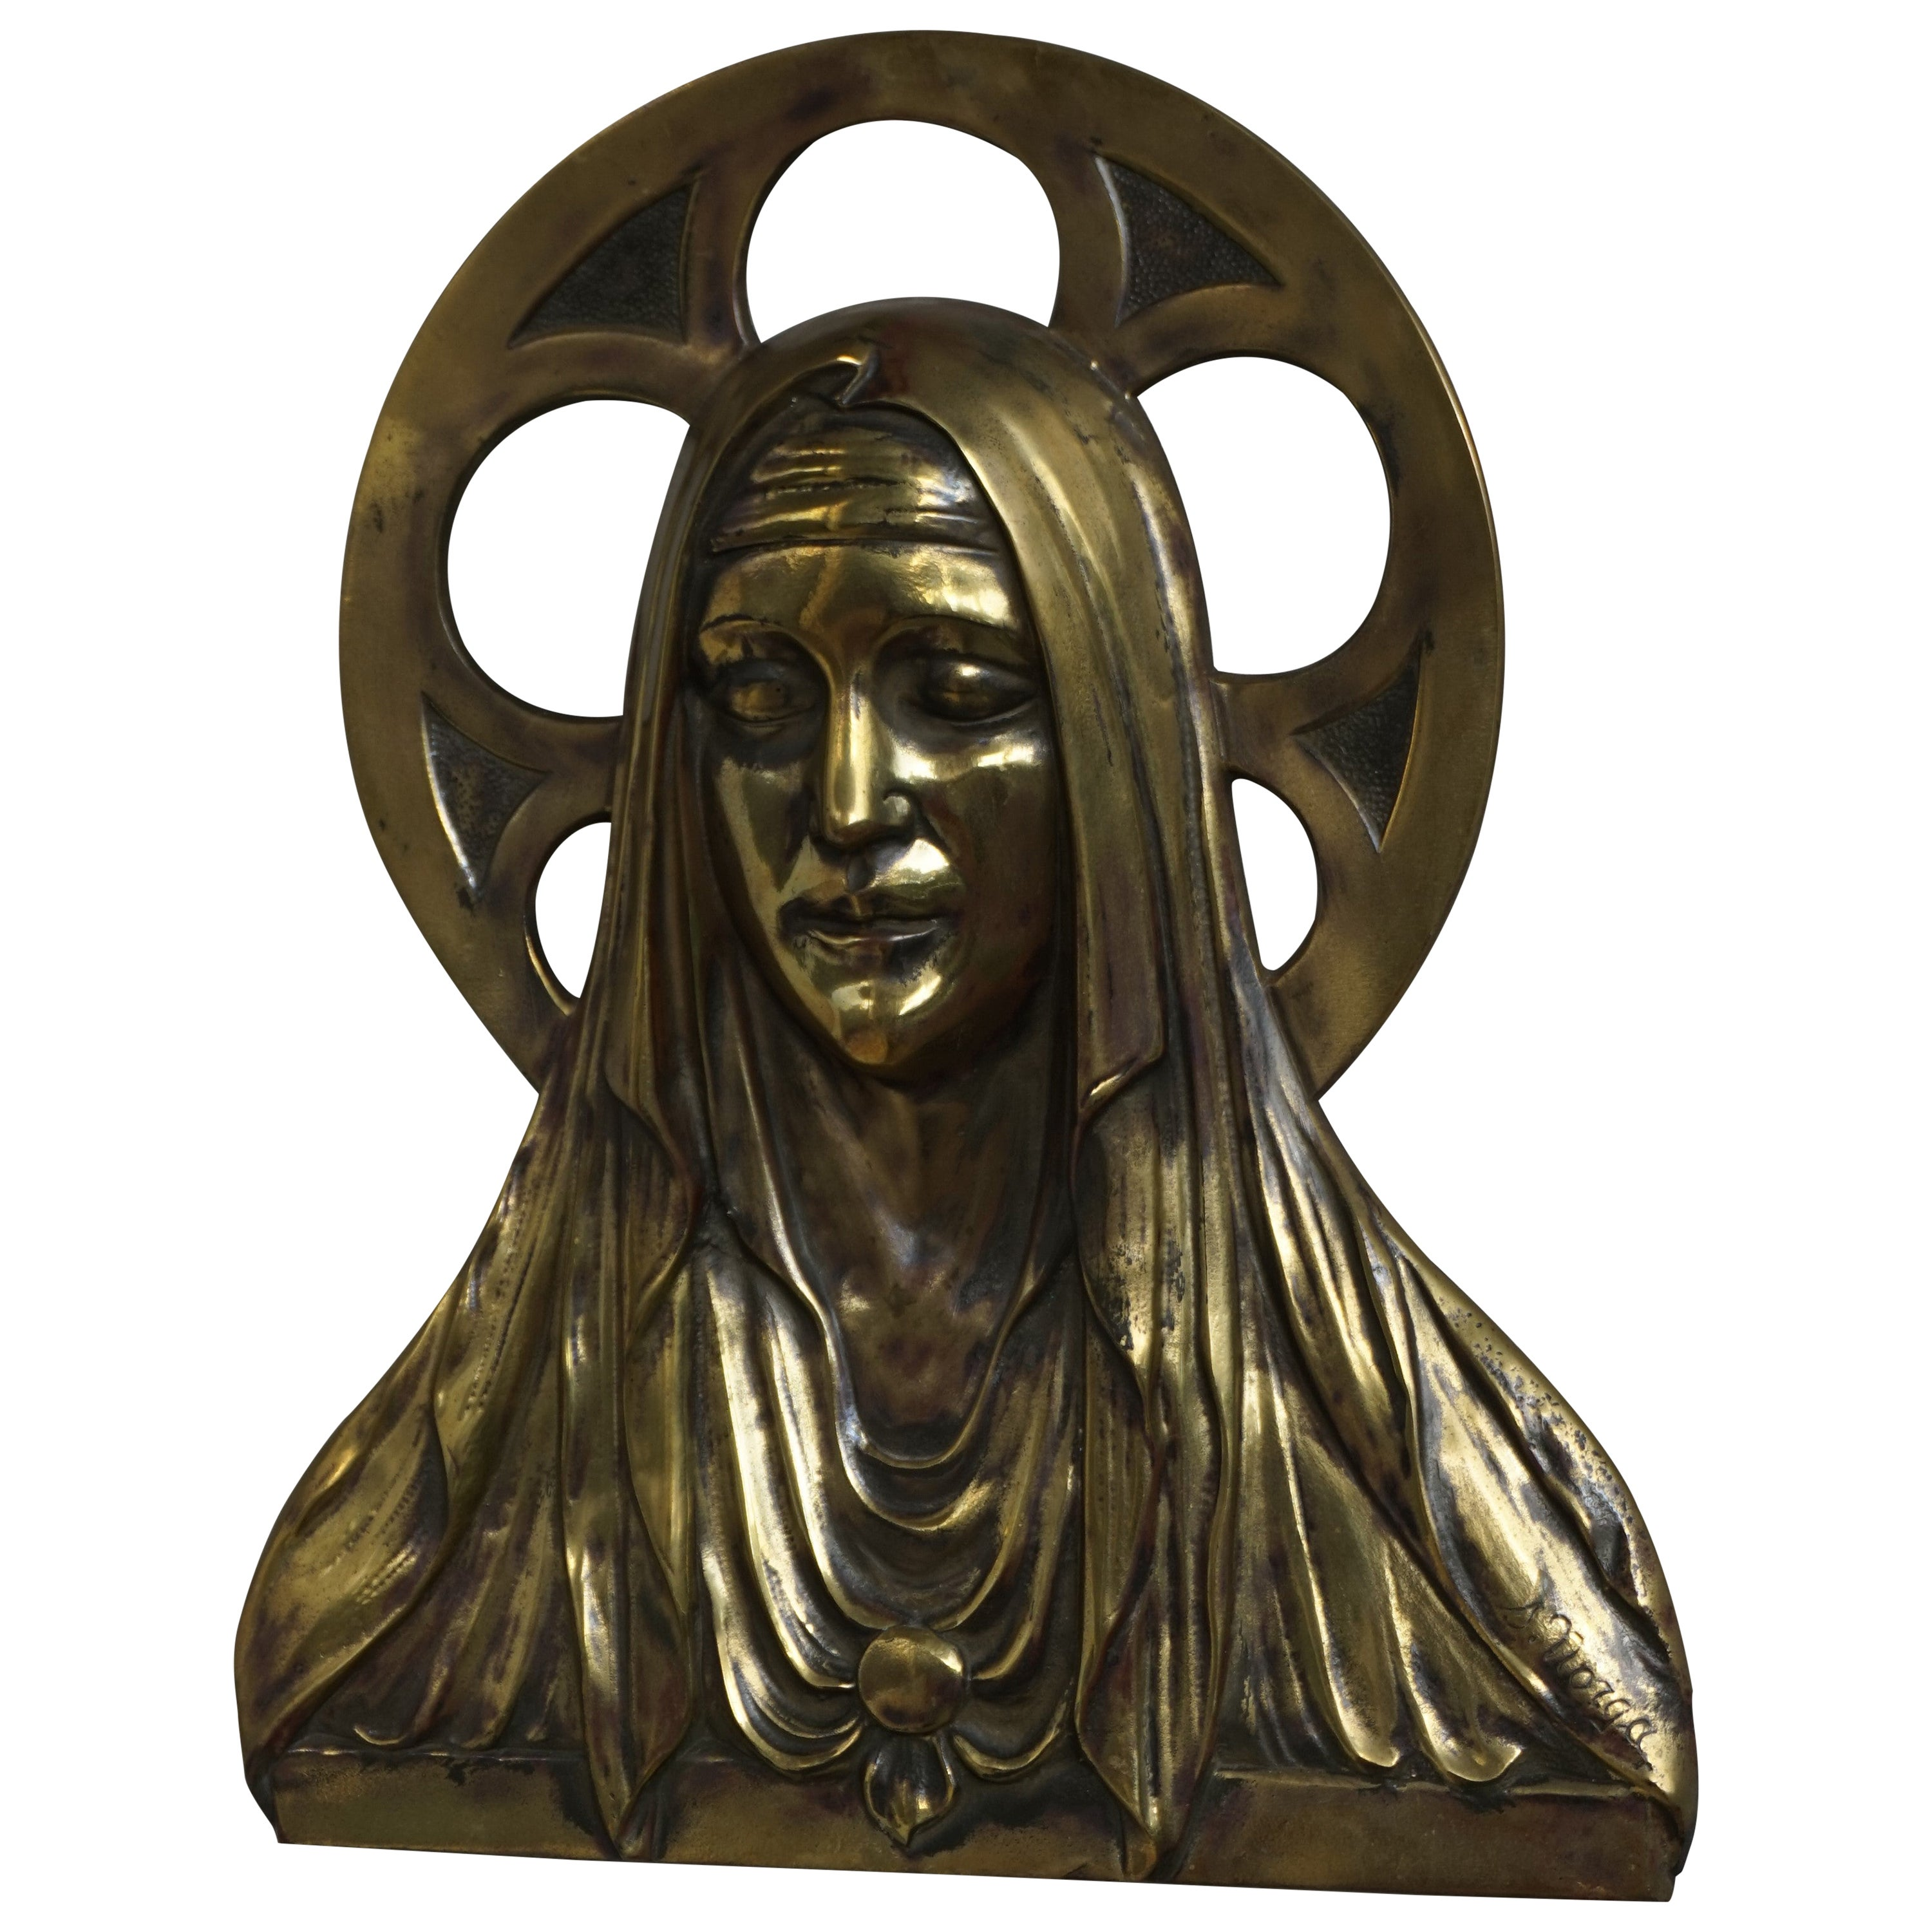 Bronze Gothic Wall Plaque by S. Norga Depicting Mother Mary in Cinquefoil Halo